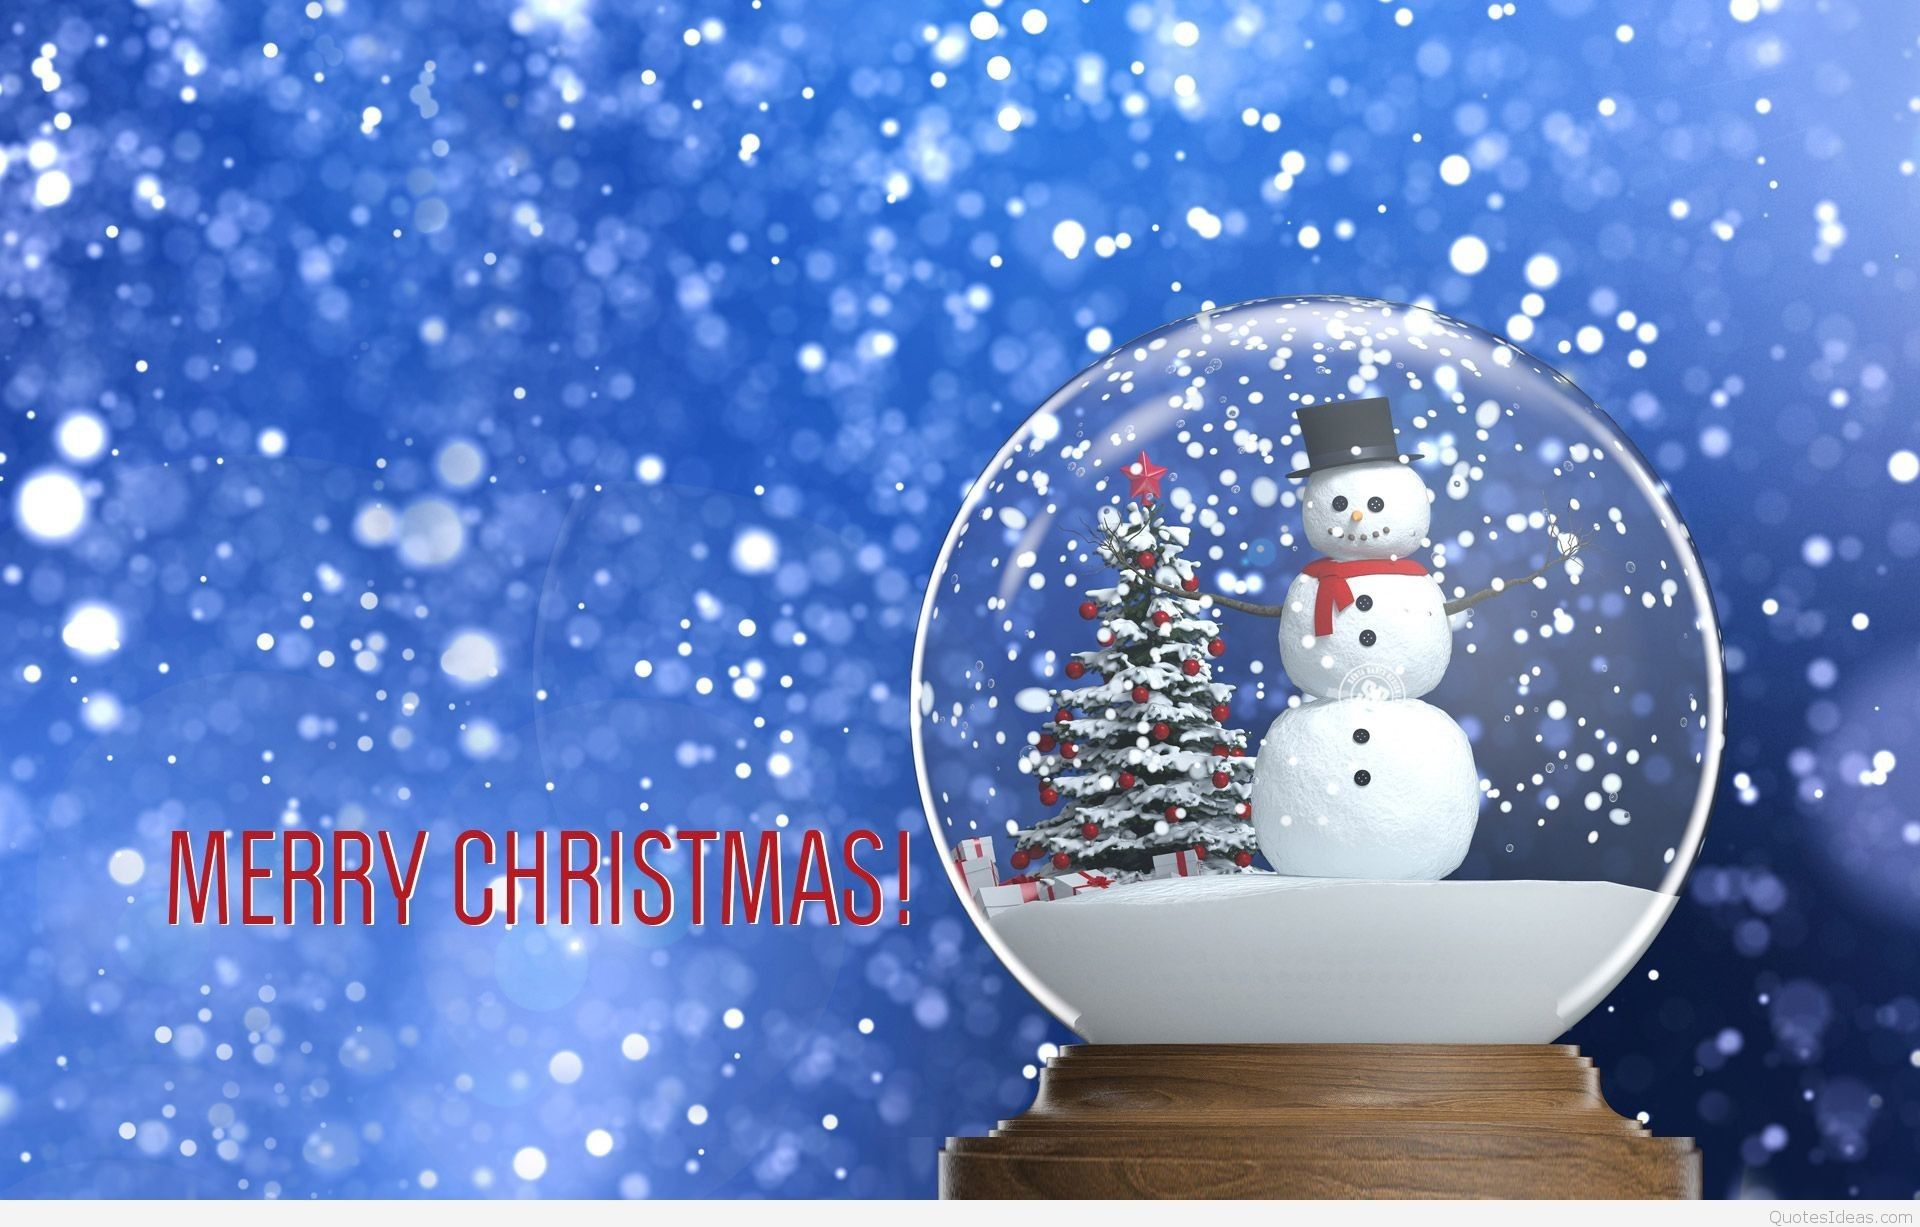 1080p Christmas Hd Wallpapers Pixelstalk Net Merry Christmas Wallpaper Christmas Wallpaper Hd Merry Christmas Wishes Images